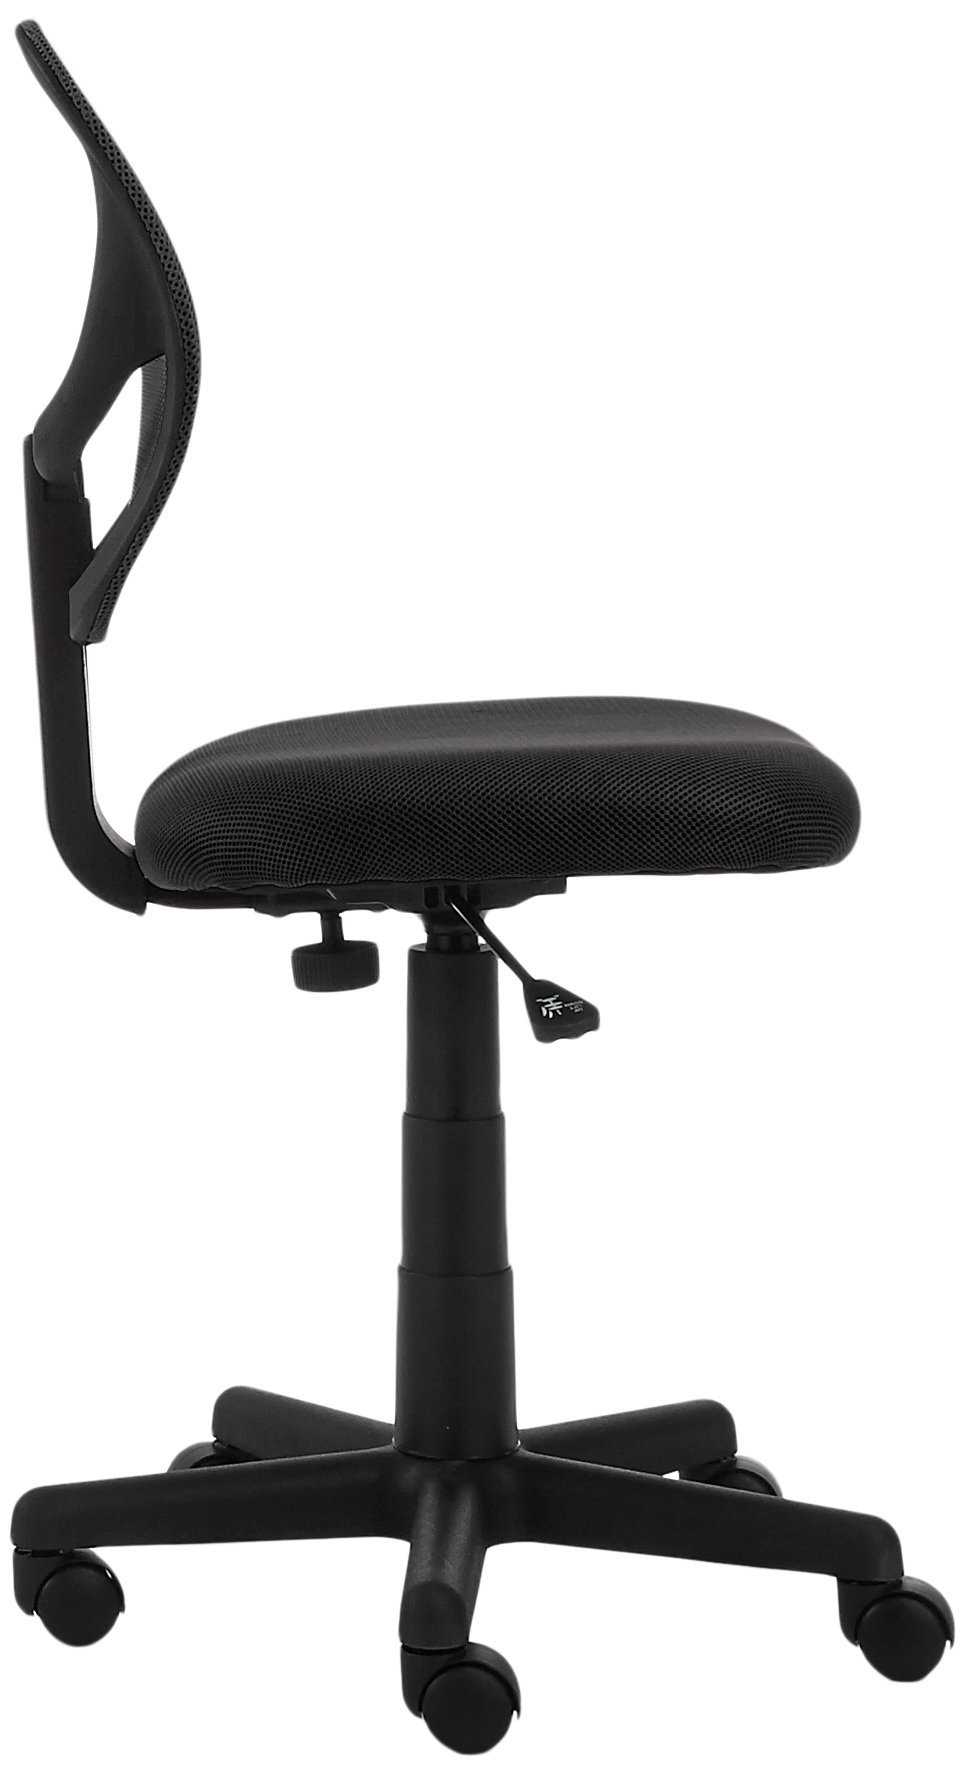 AmazonBasics Low-Back Computer Task/Desk Chair with Swivel Casters - Black by AmazonBasics (Image #4)